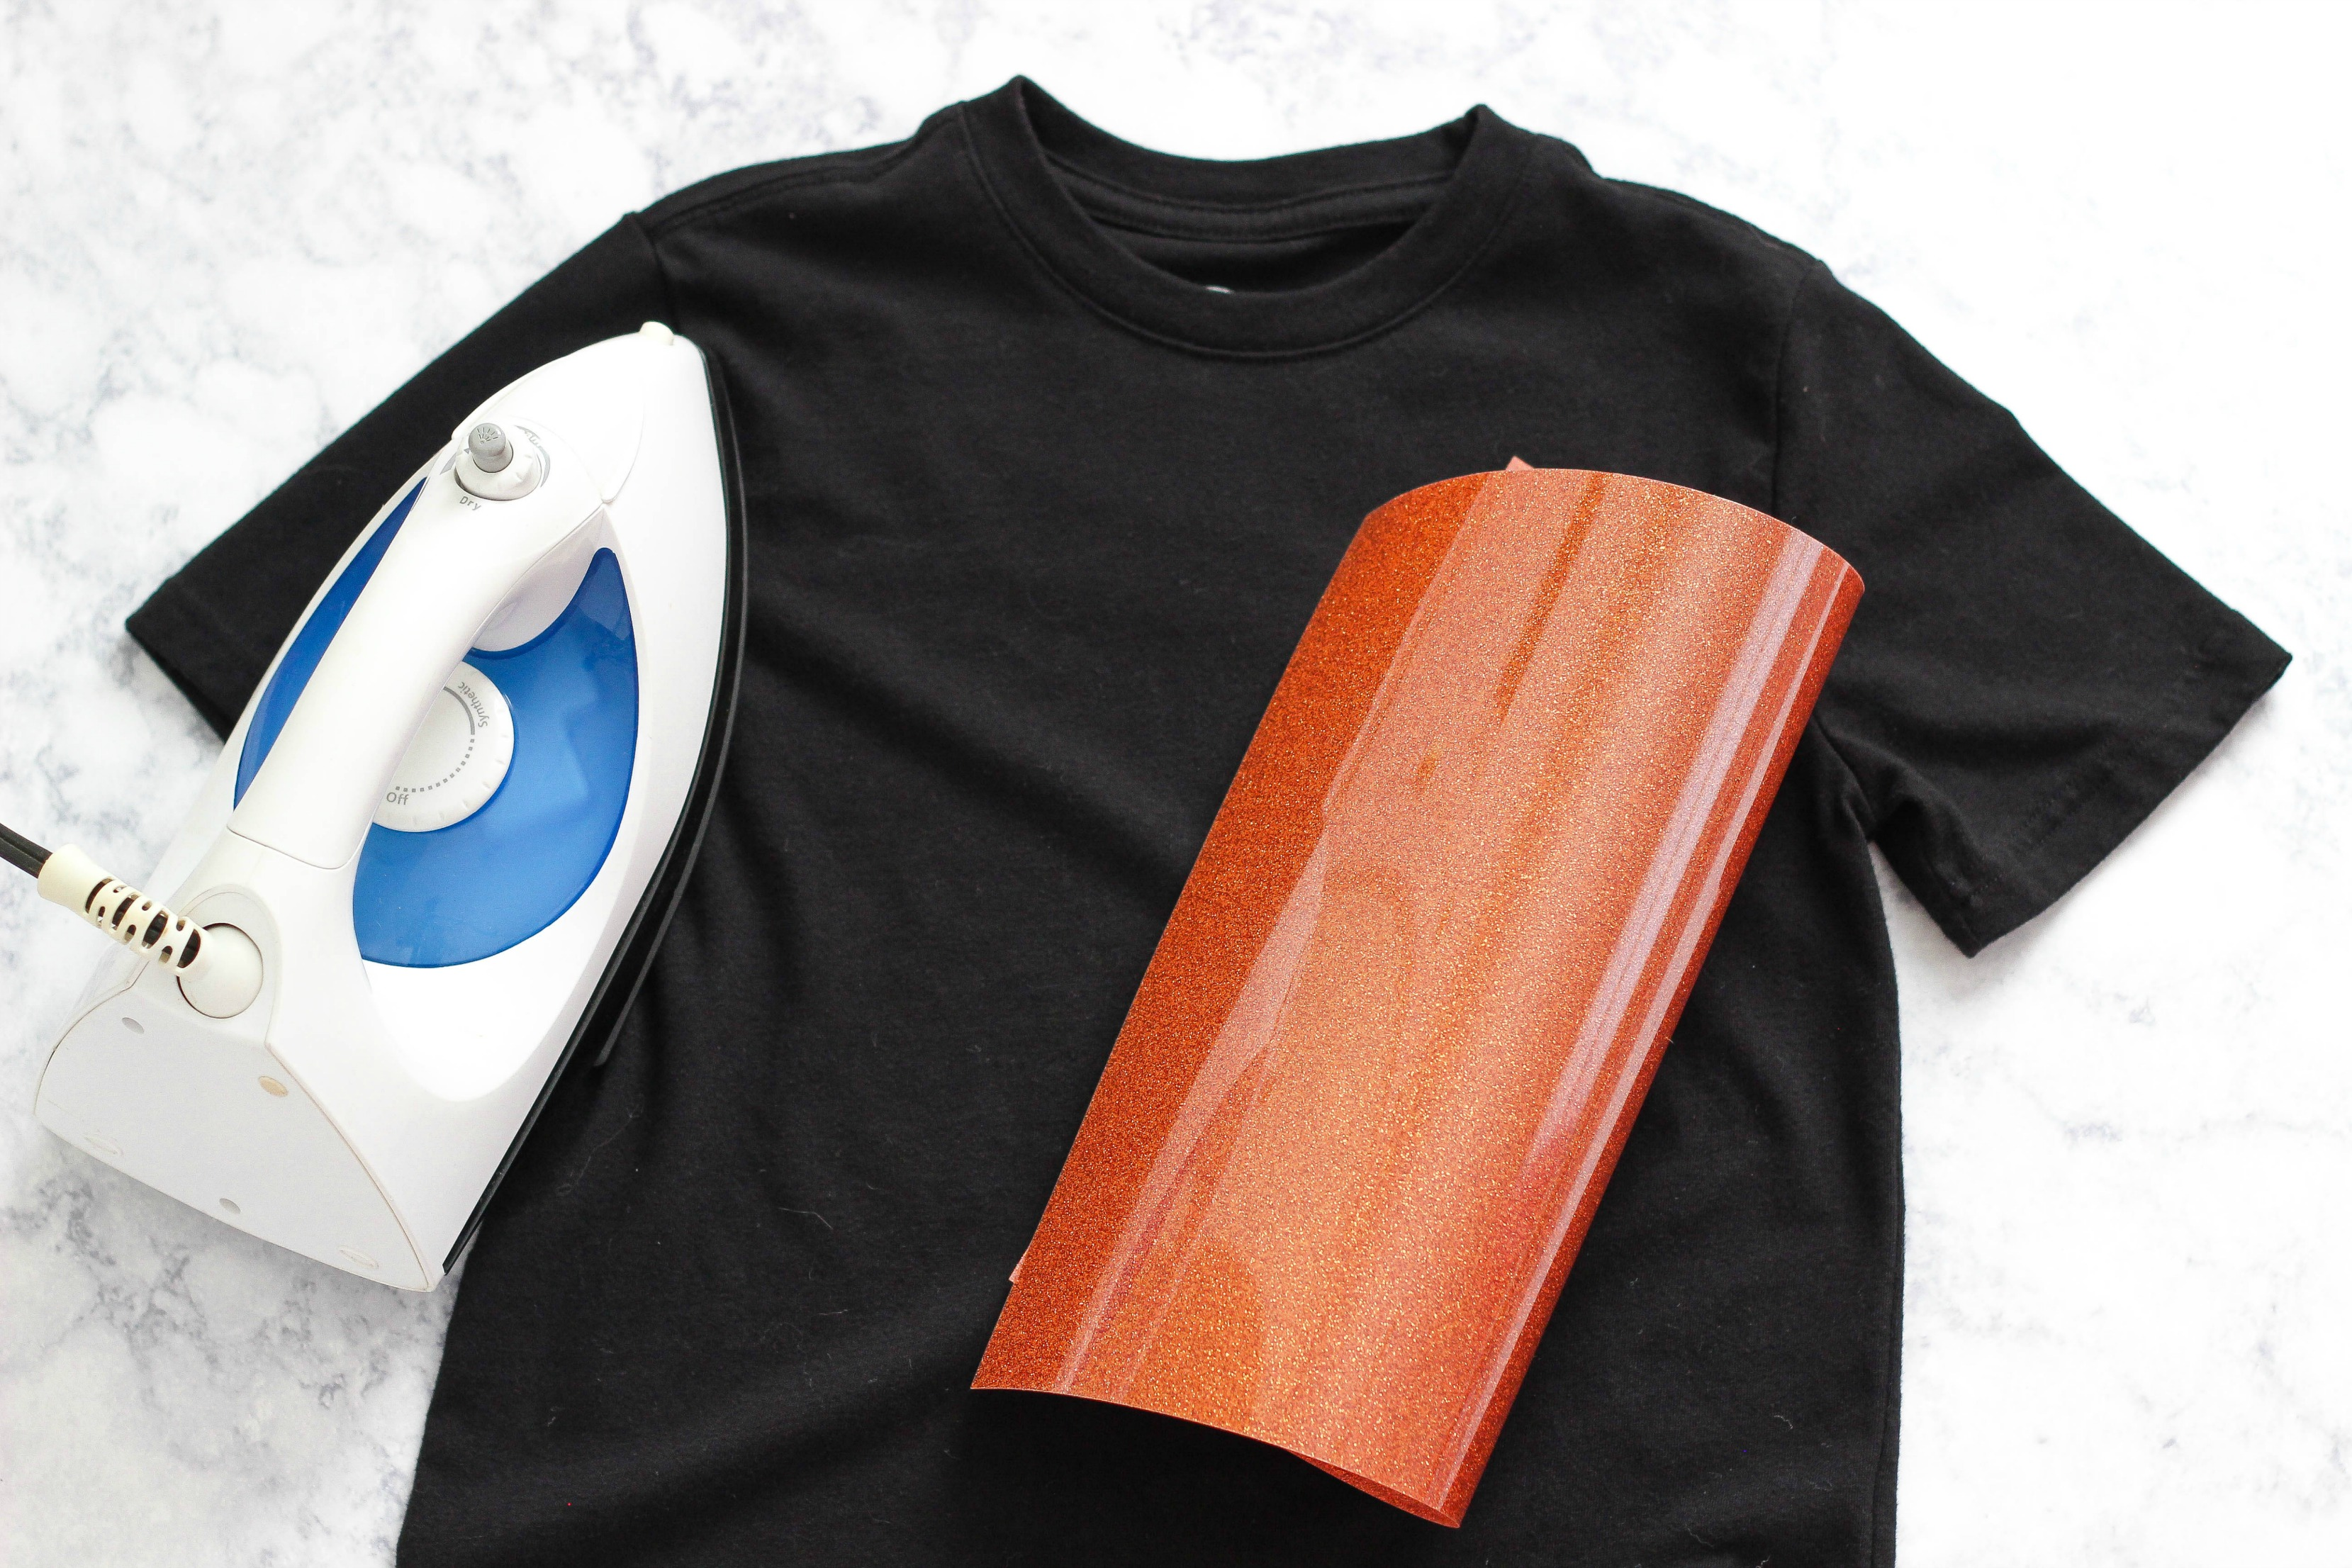 Pumpkin Iron-On Vinyl Shirt Supplies